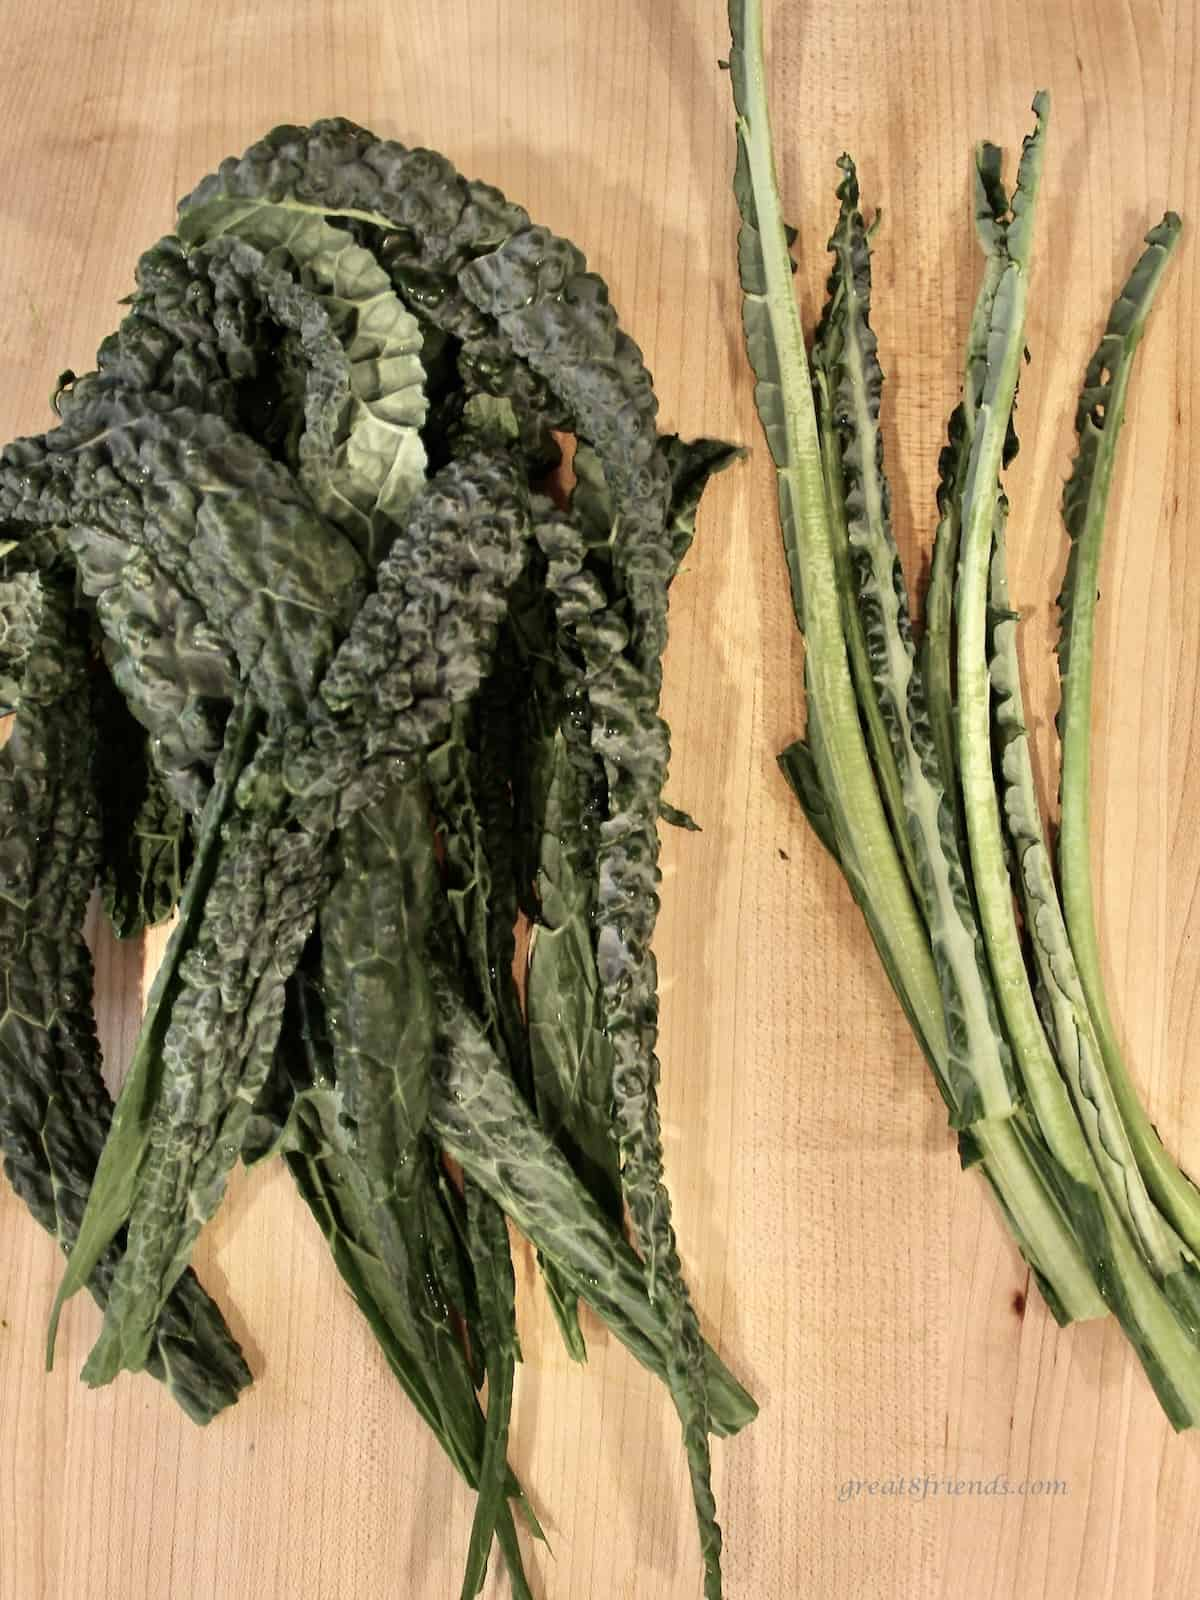 Tuscan kale leaves with the stems cut out and set aside.